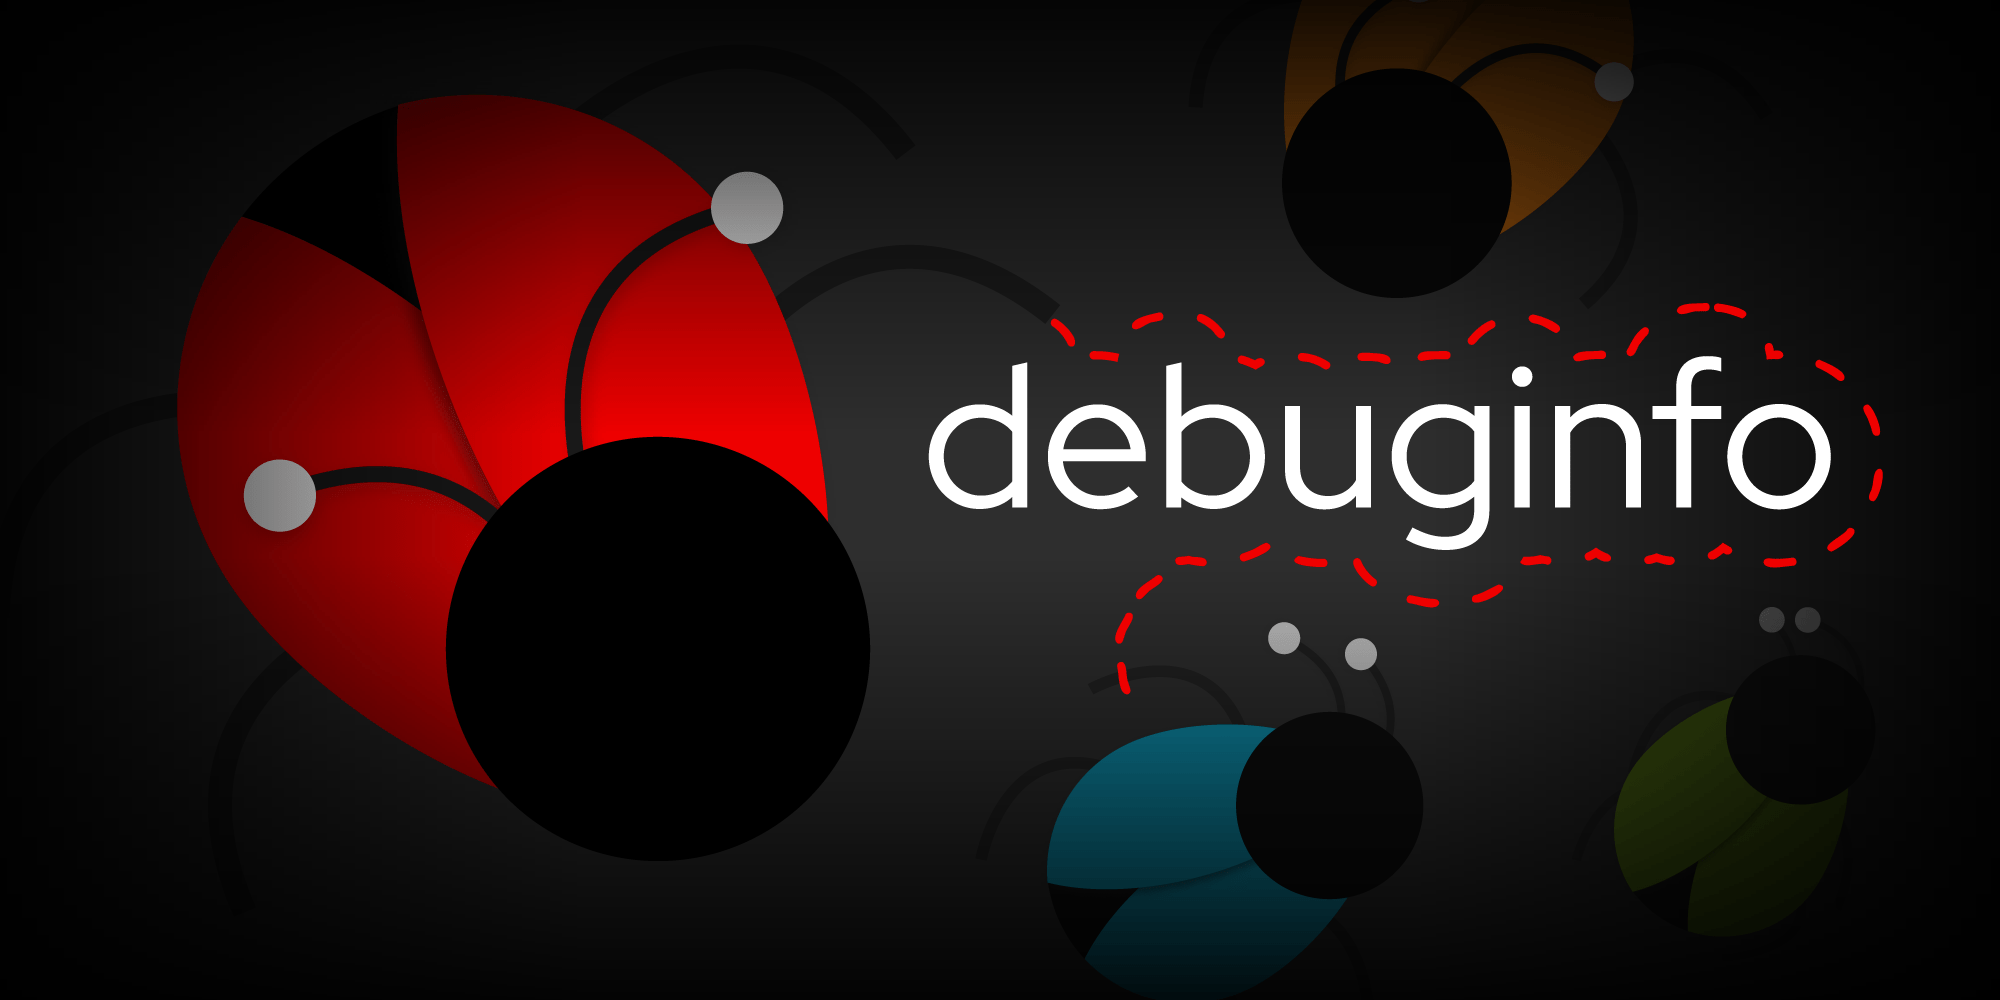 Debuginfo is not just for debugging programs